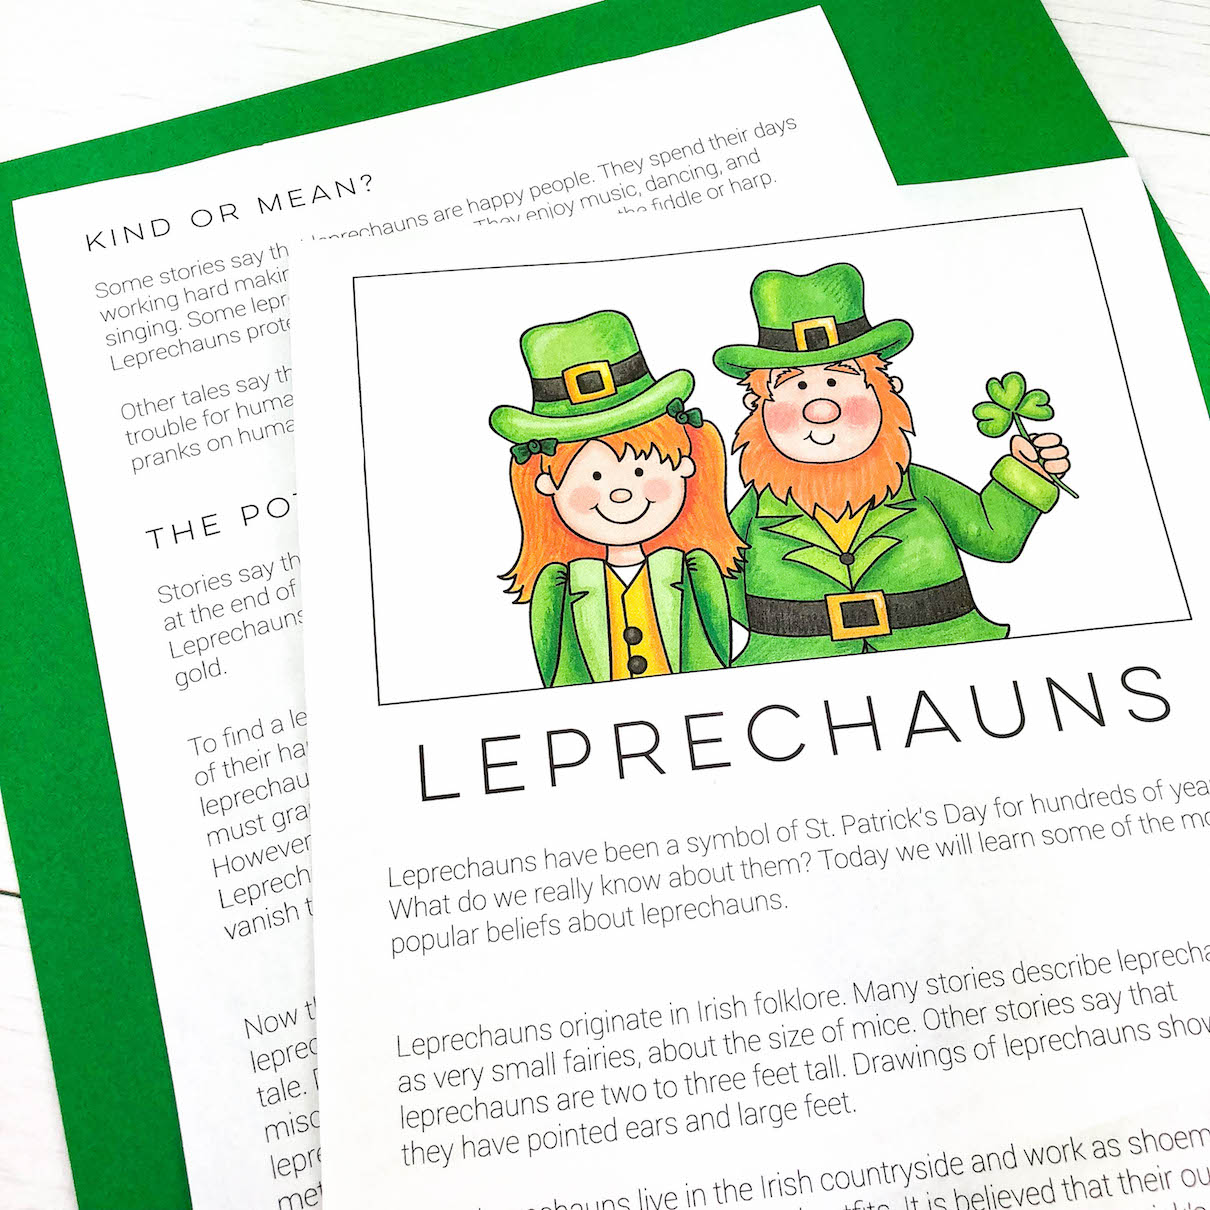 Learn about the history of Leprechauns and create your own story.